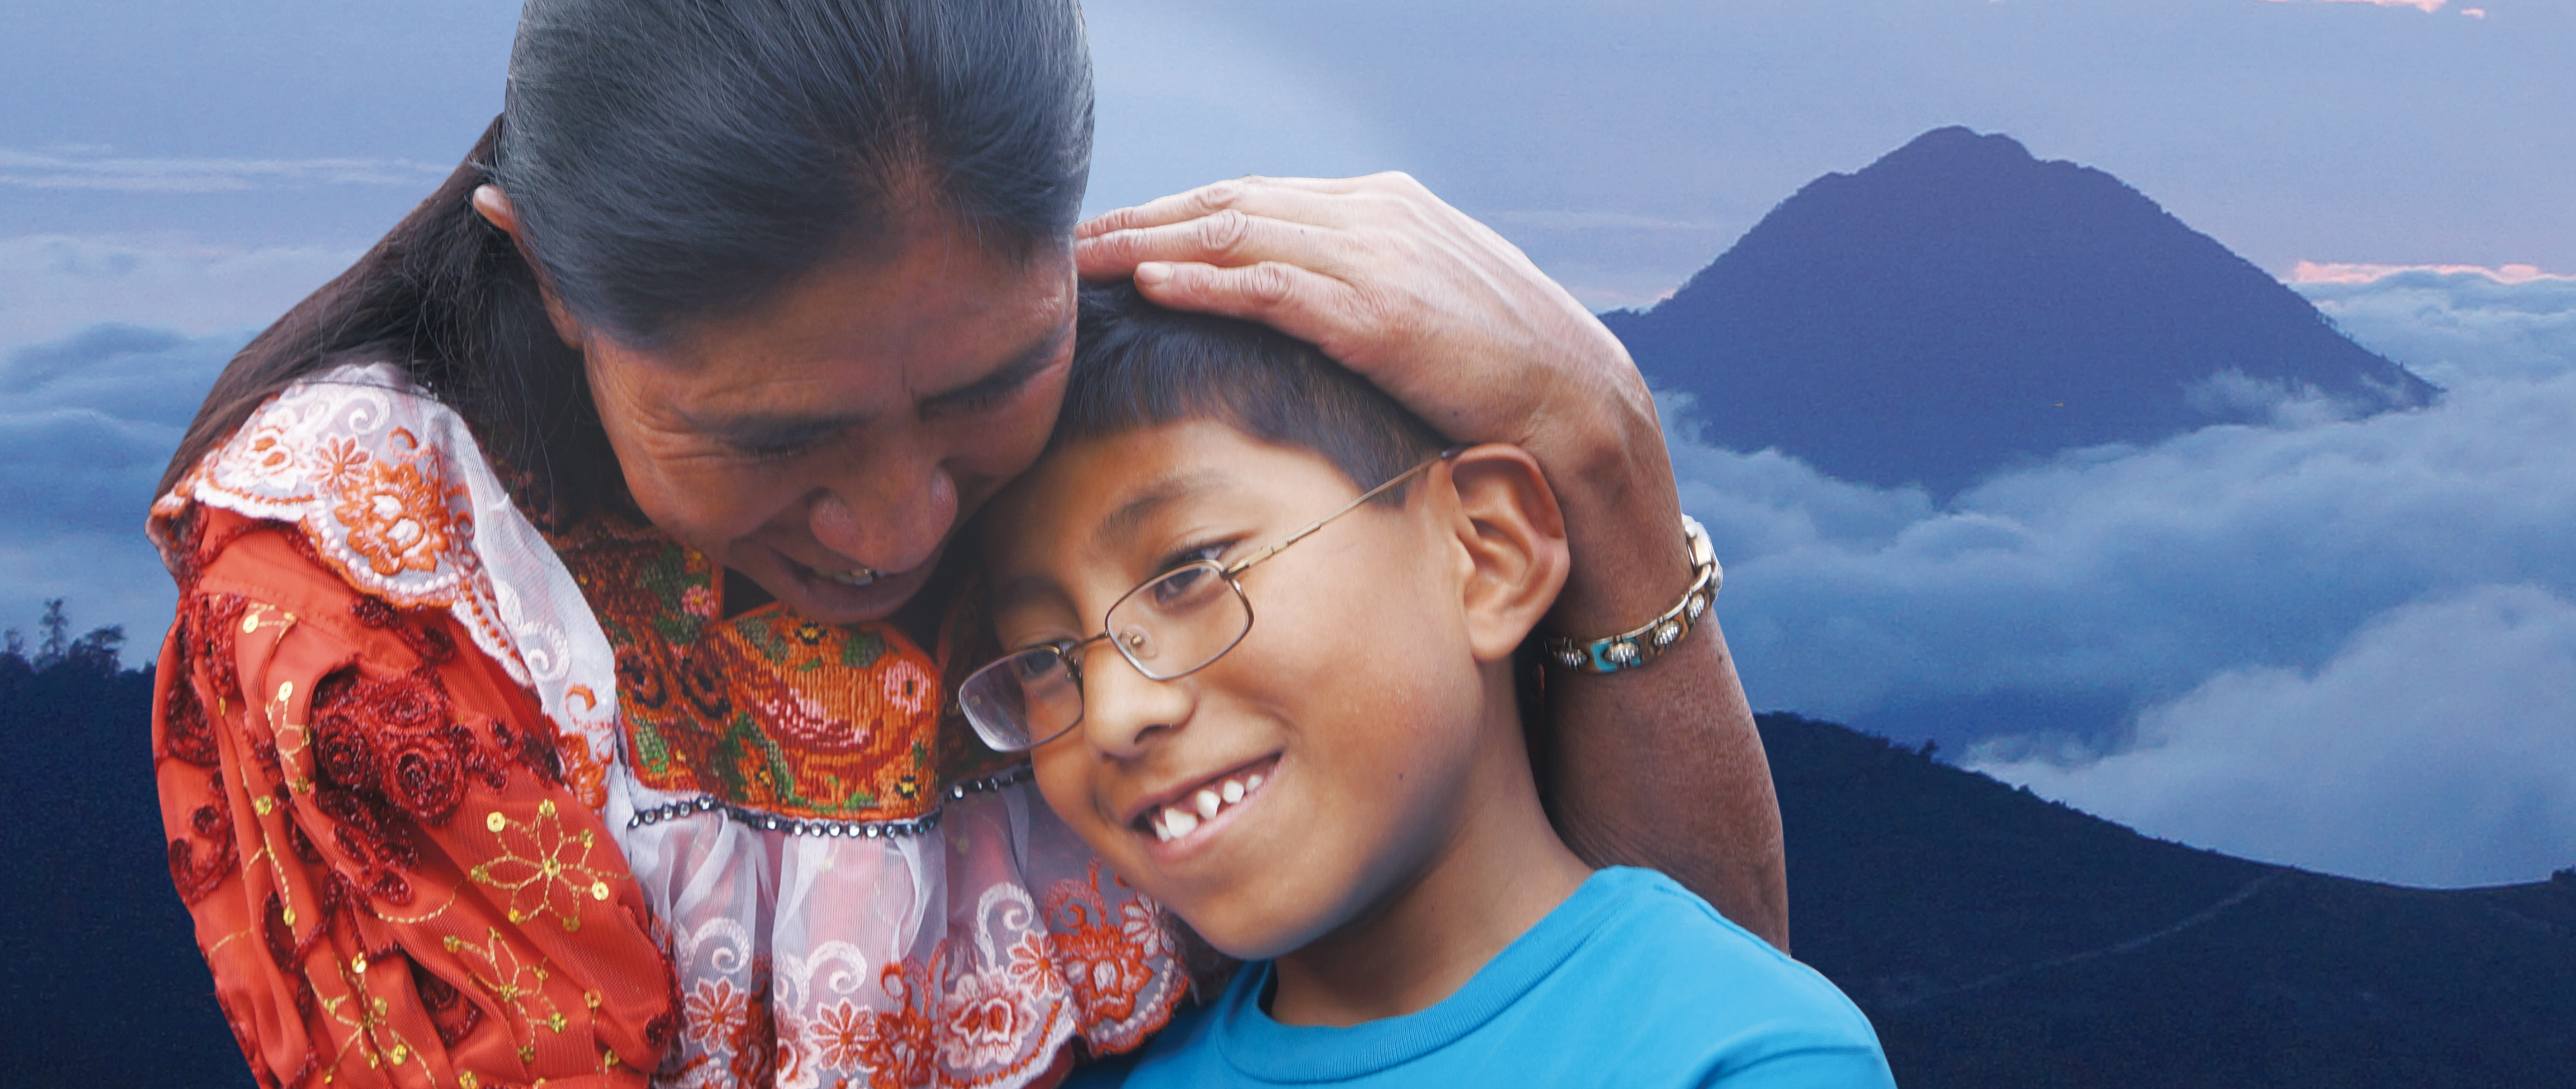 "<a href=""https://www.bnaiisrael.net/community/social-action""